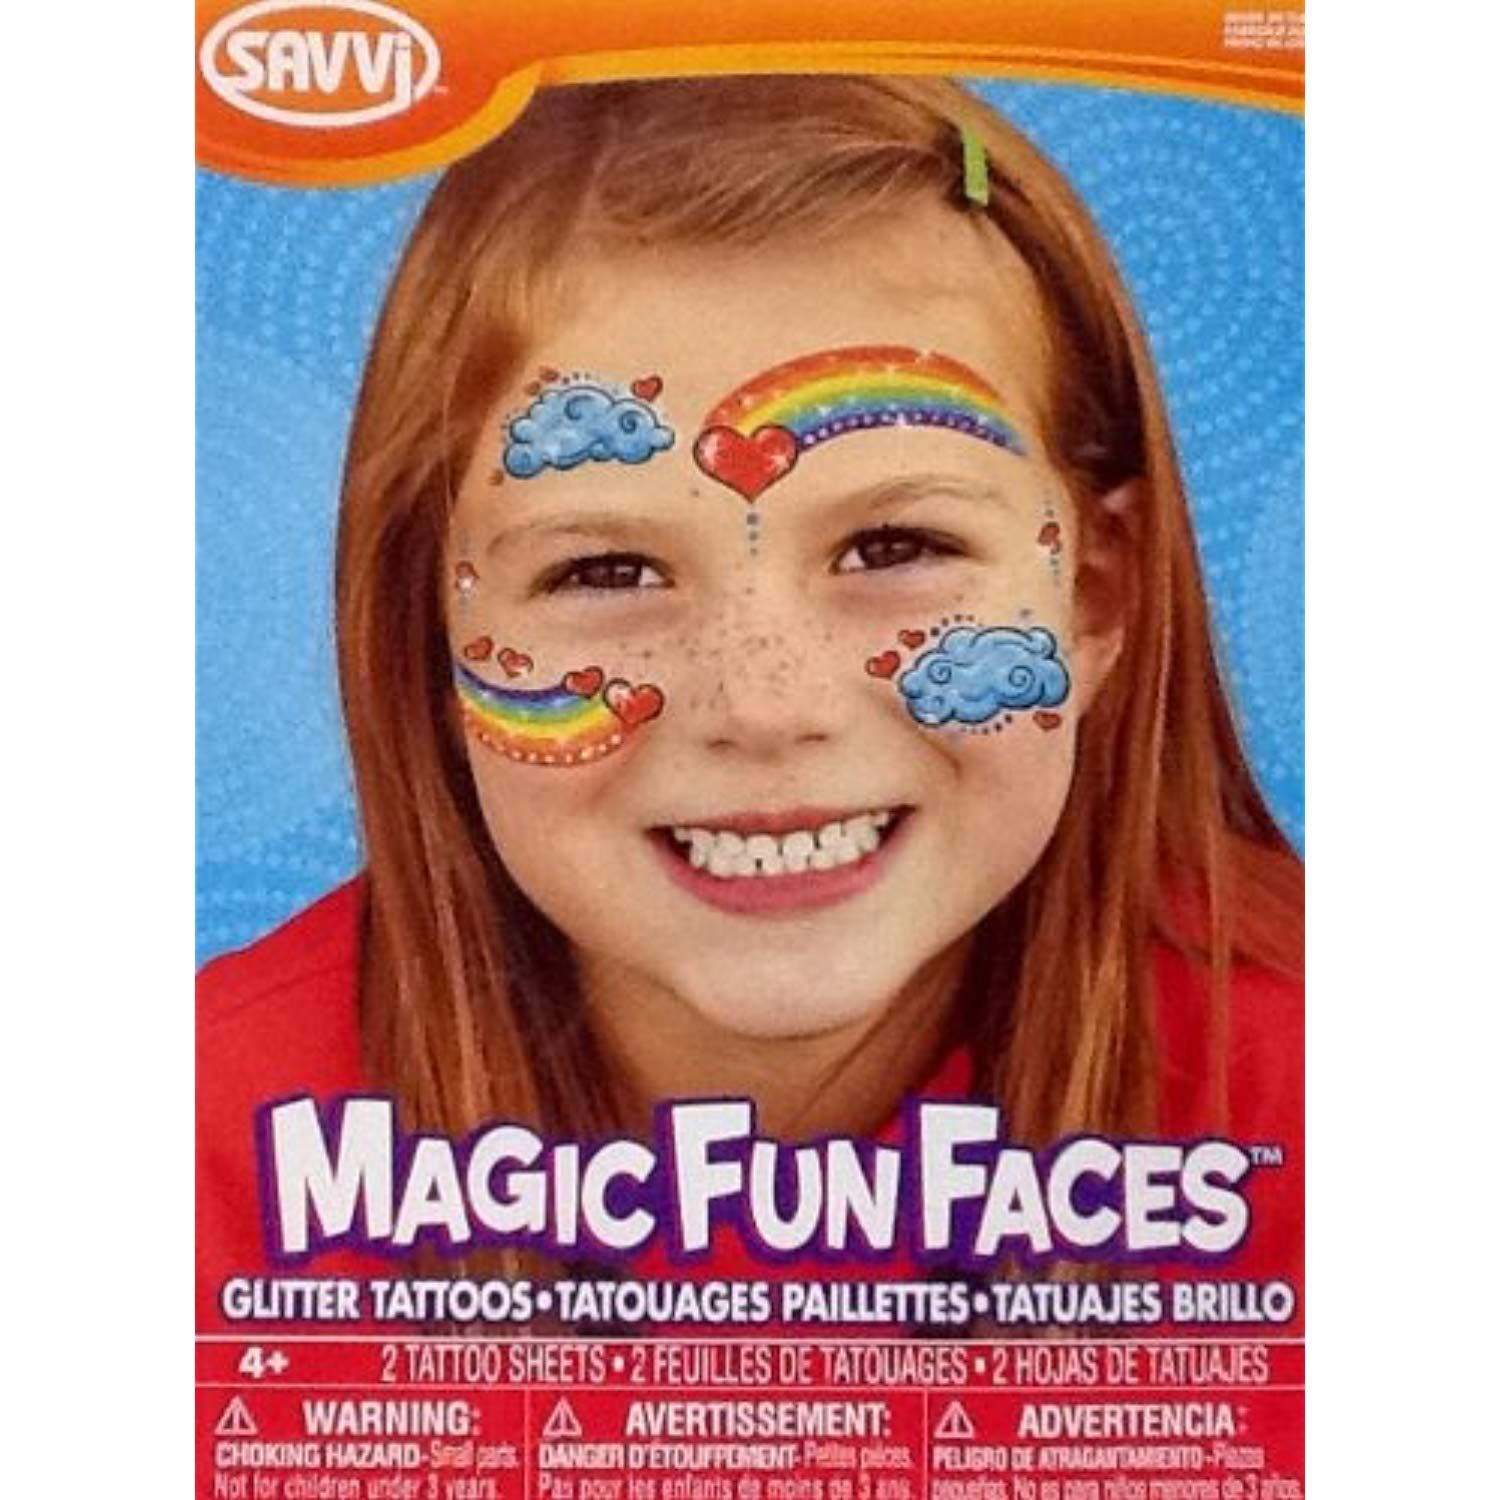 Temporary Tattoos Glitter Rainbow Face Magic Fun Faces